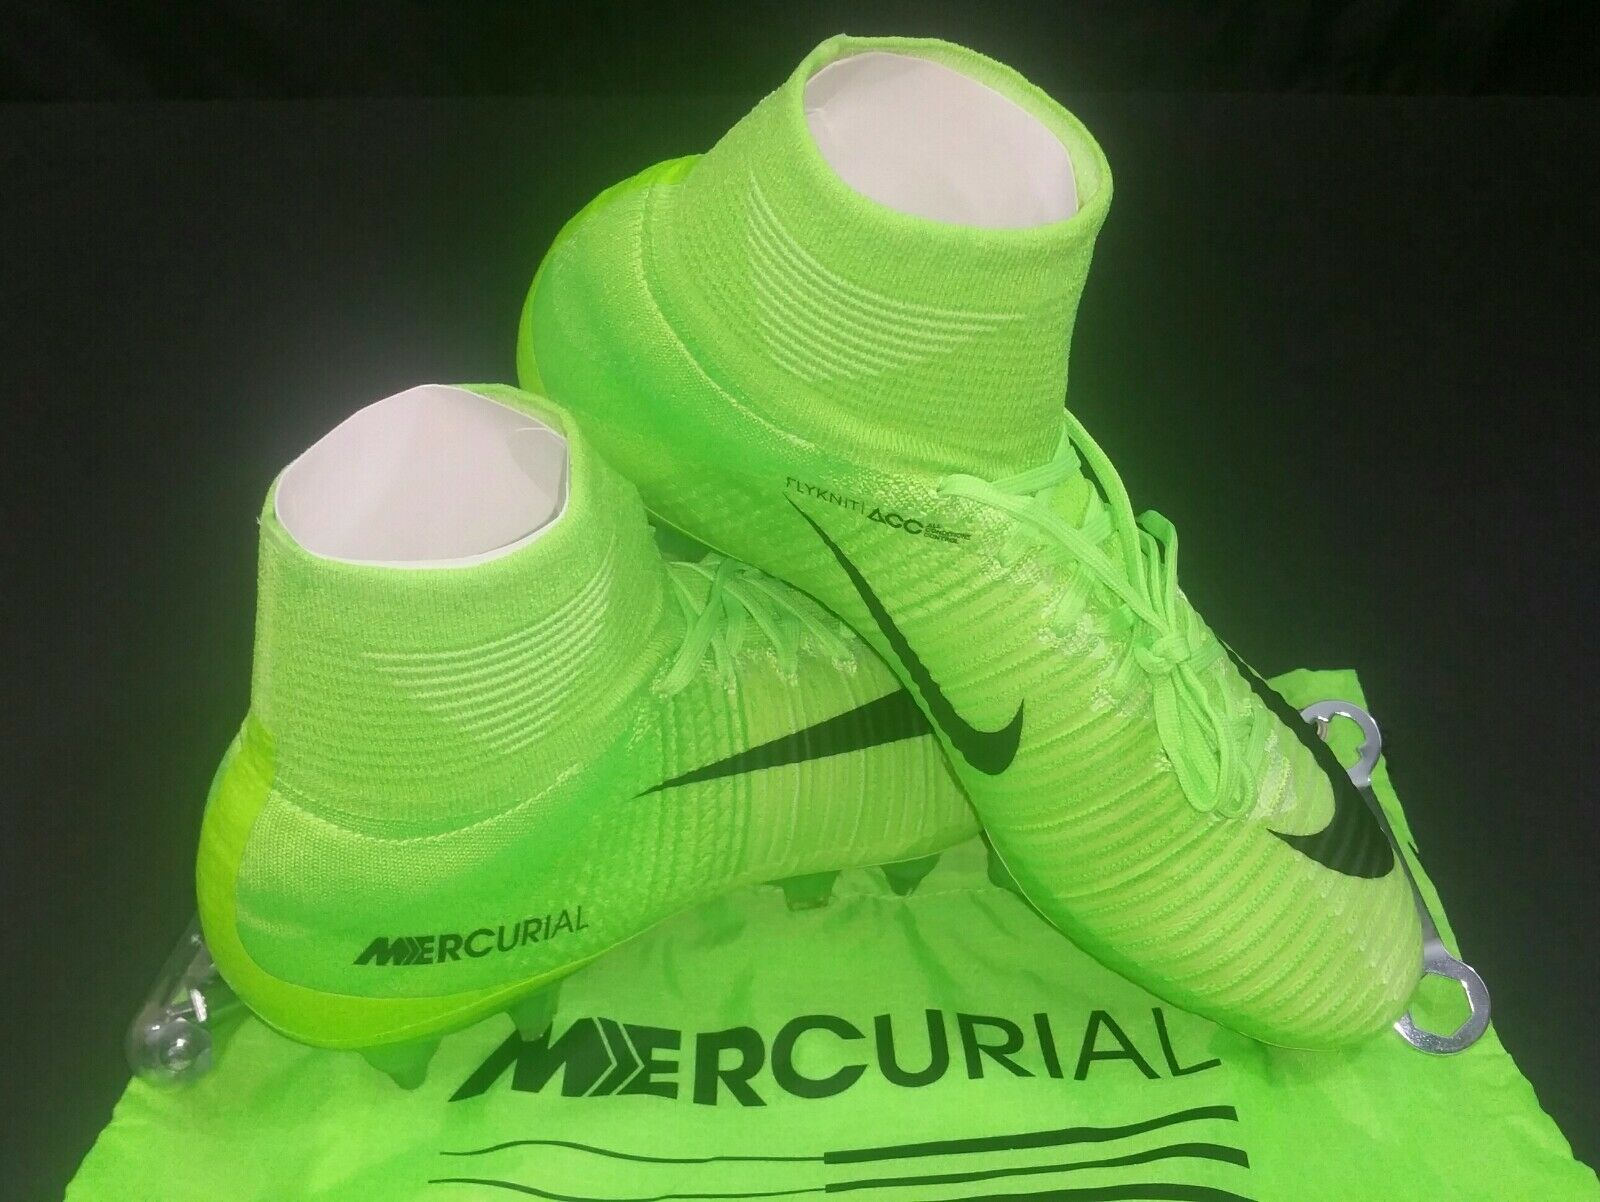 Nike Mercurial Superfly V DF SG-PRO, Electric Green Black, Size 8.5